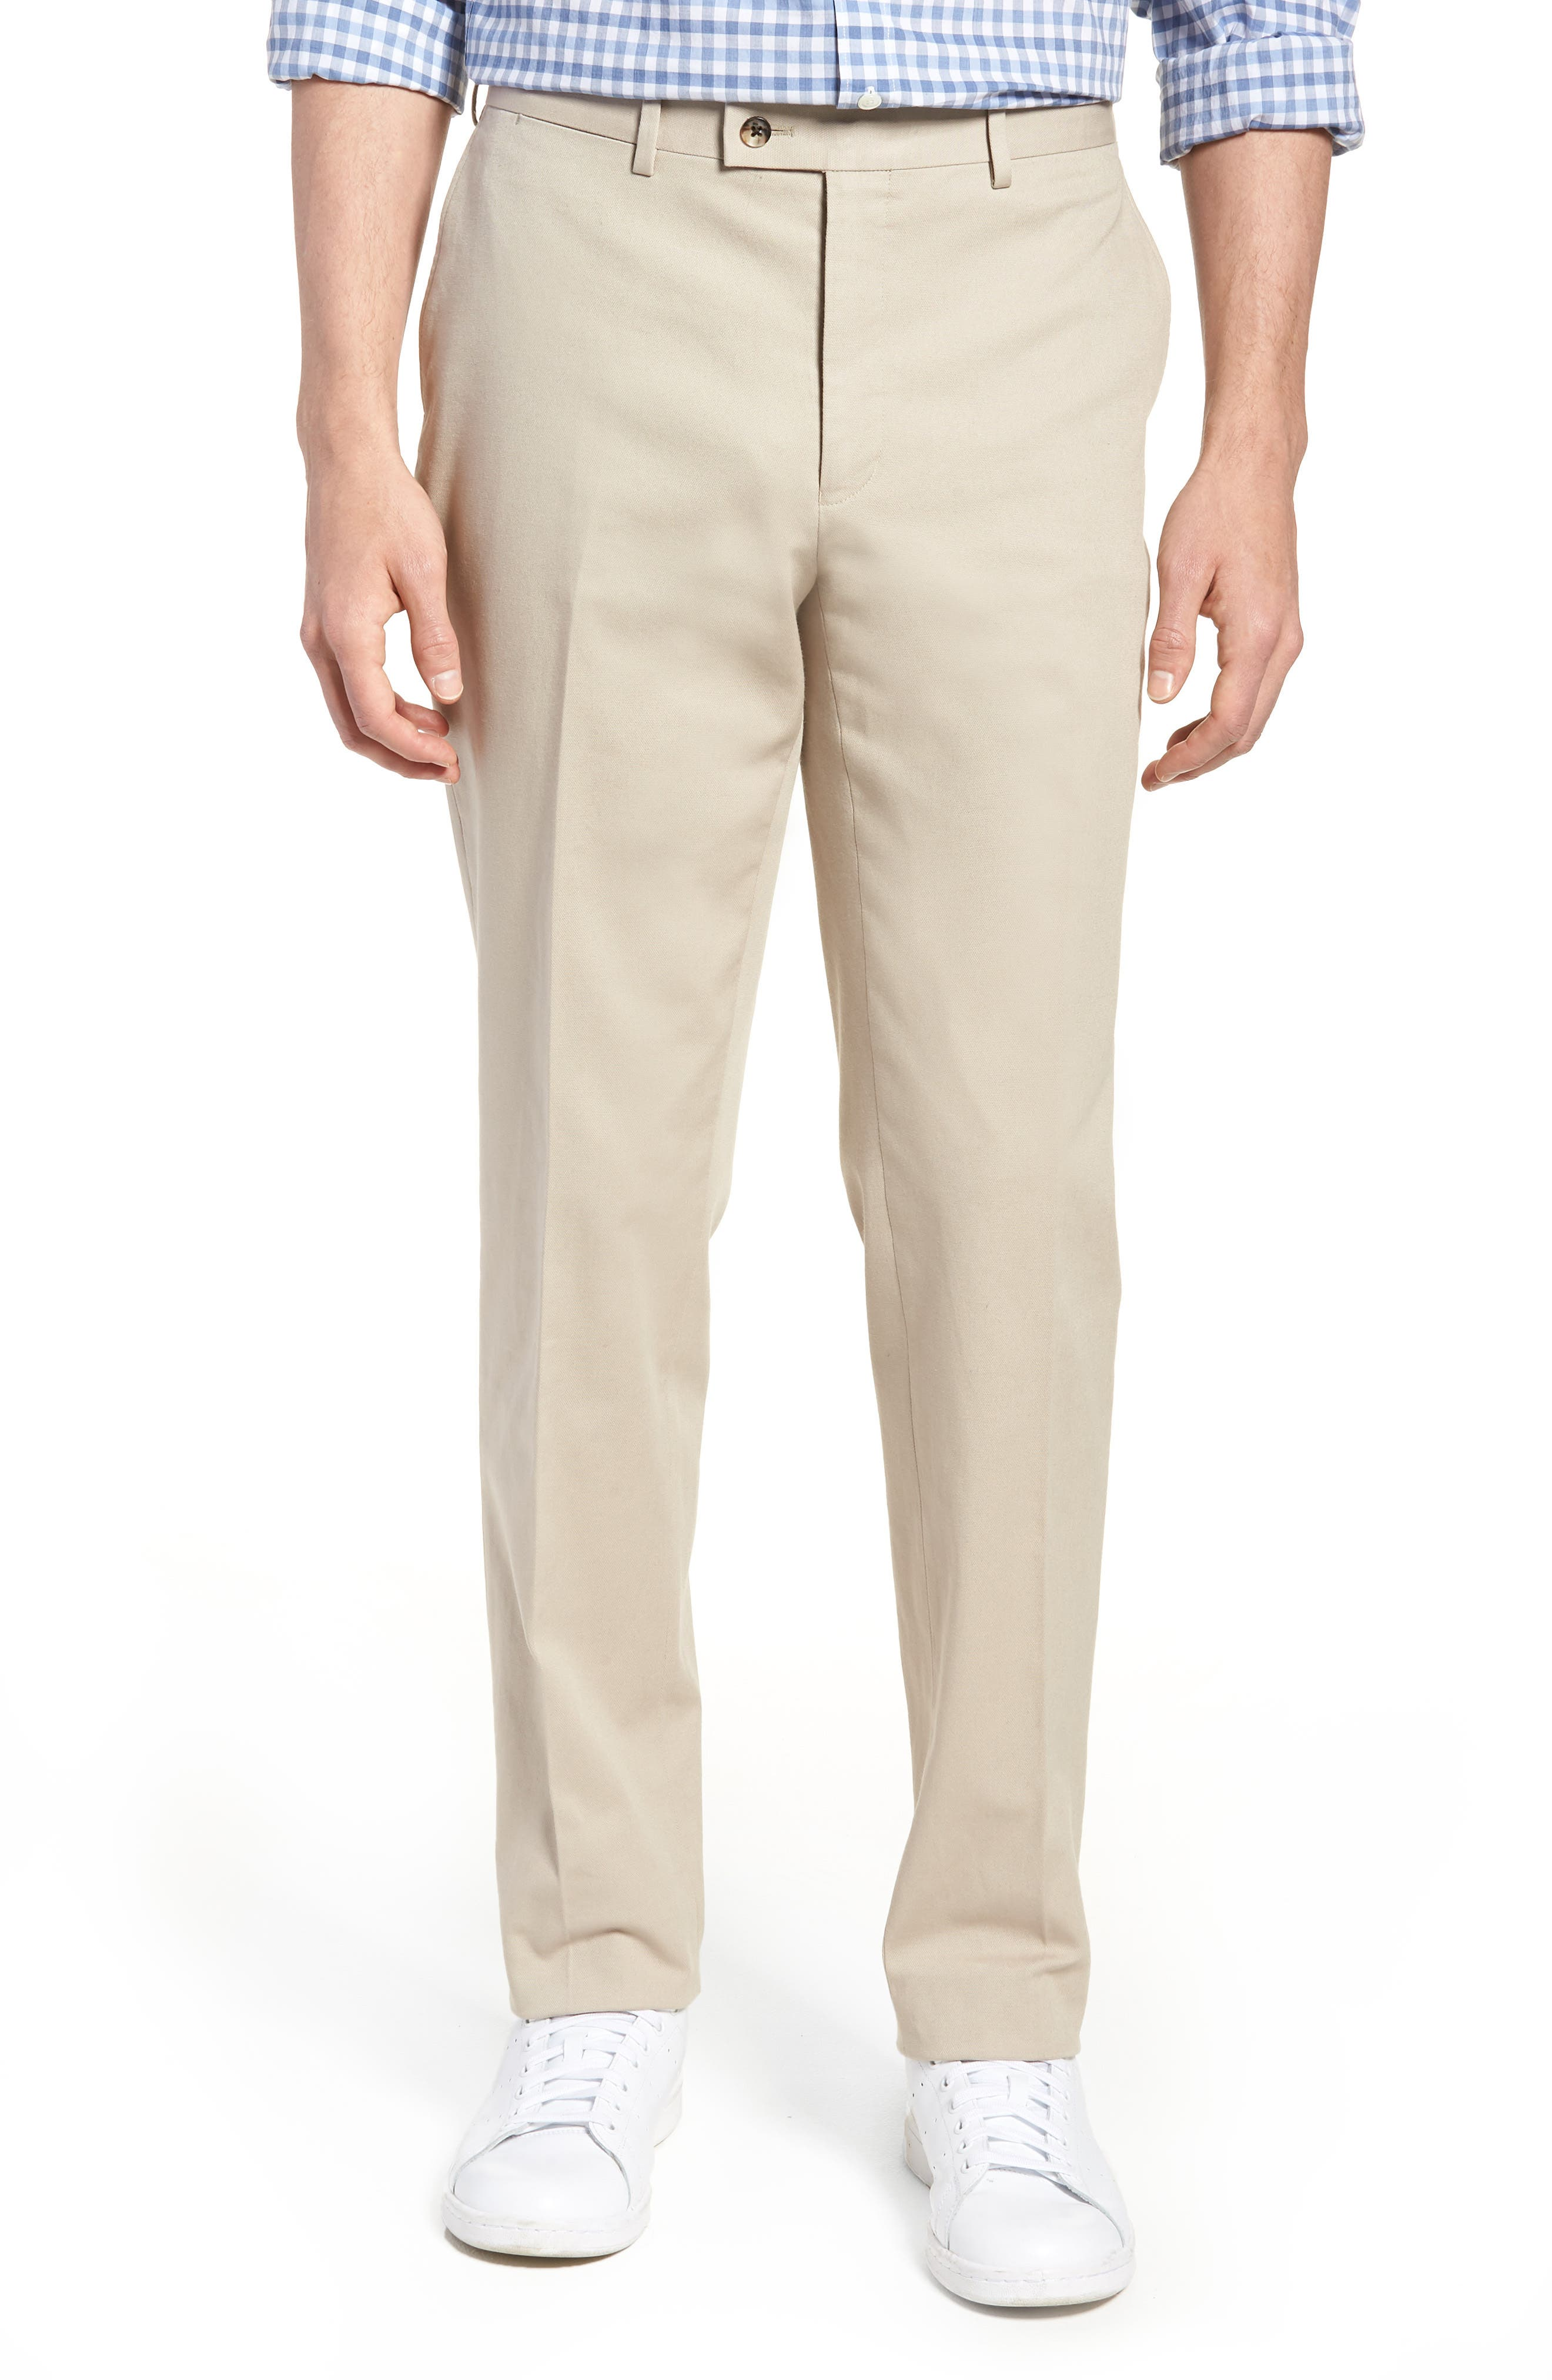 Finchley Regular Fit Pants,                         Main,                         color, 102